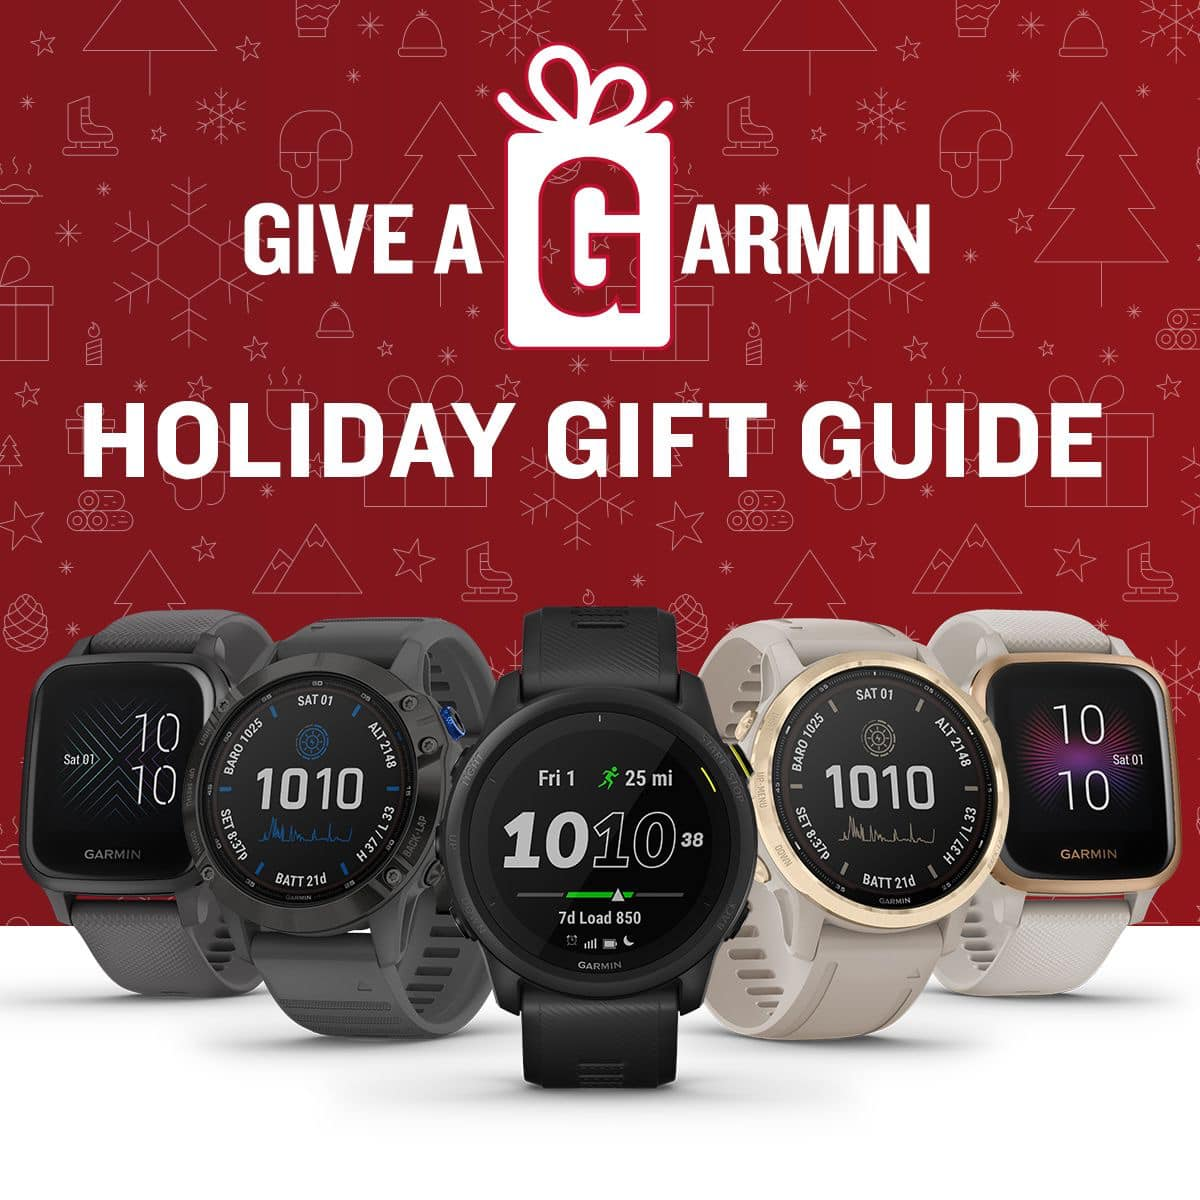 "Nothing says ""happy holidays"" like something special from Garmin. Shop our holiday gift guide for presents that meet all their passions.  Visit any of our official Garmin Brand Stores nationwide to avail. Or shop from the comfort of your homes — head to our official Garmin stores online: Garmin PH Viber Community, Kinetic.com.ph‬, Lazada, Shopee, and Zalora. FREE SHIPPING NATIONWIDE for online purchases. ‬‬‬‬‬‬‬‬‬ 🛒Garmin PH Viber Community: www.tomtop.com"